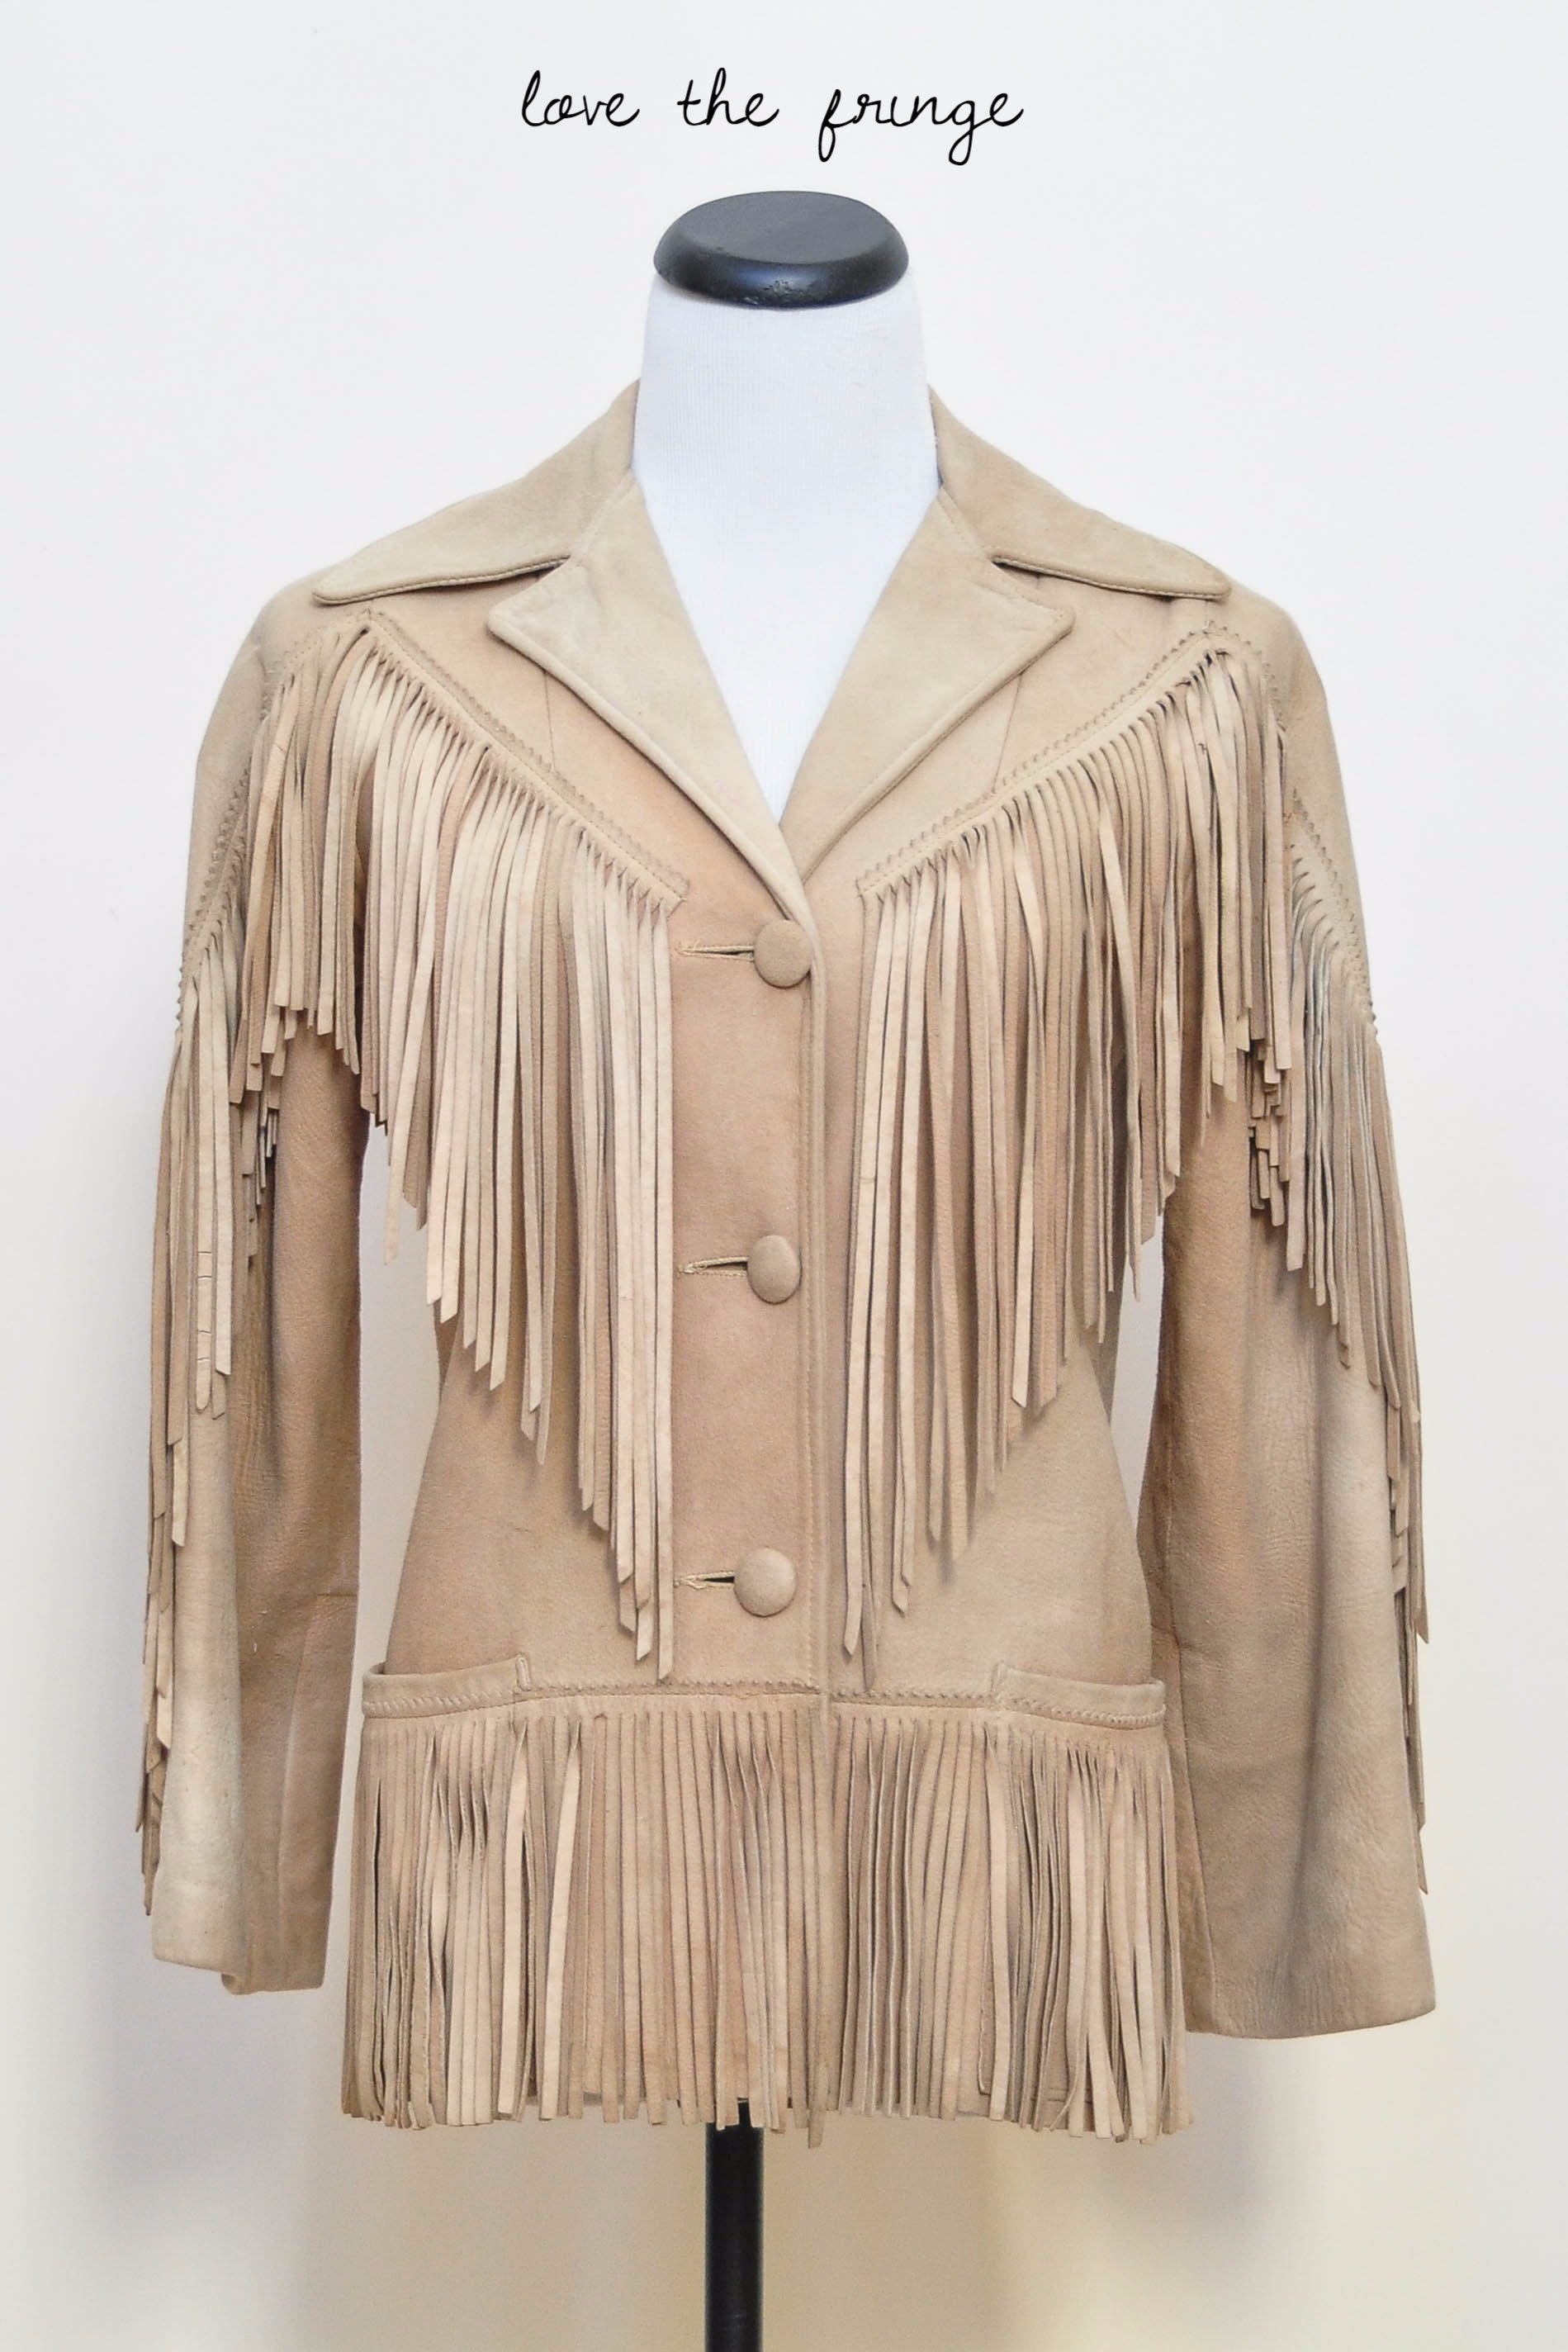 simone-river-vintage bygones antiques wares vintage clothes vintage store california vintage art  coat, fringe suede vintage coat,southwest coat